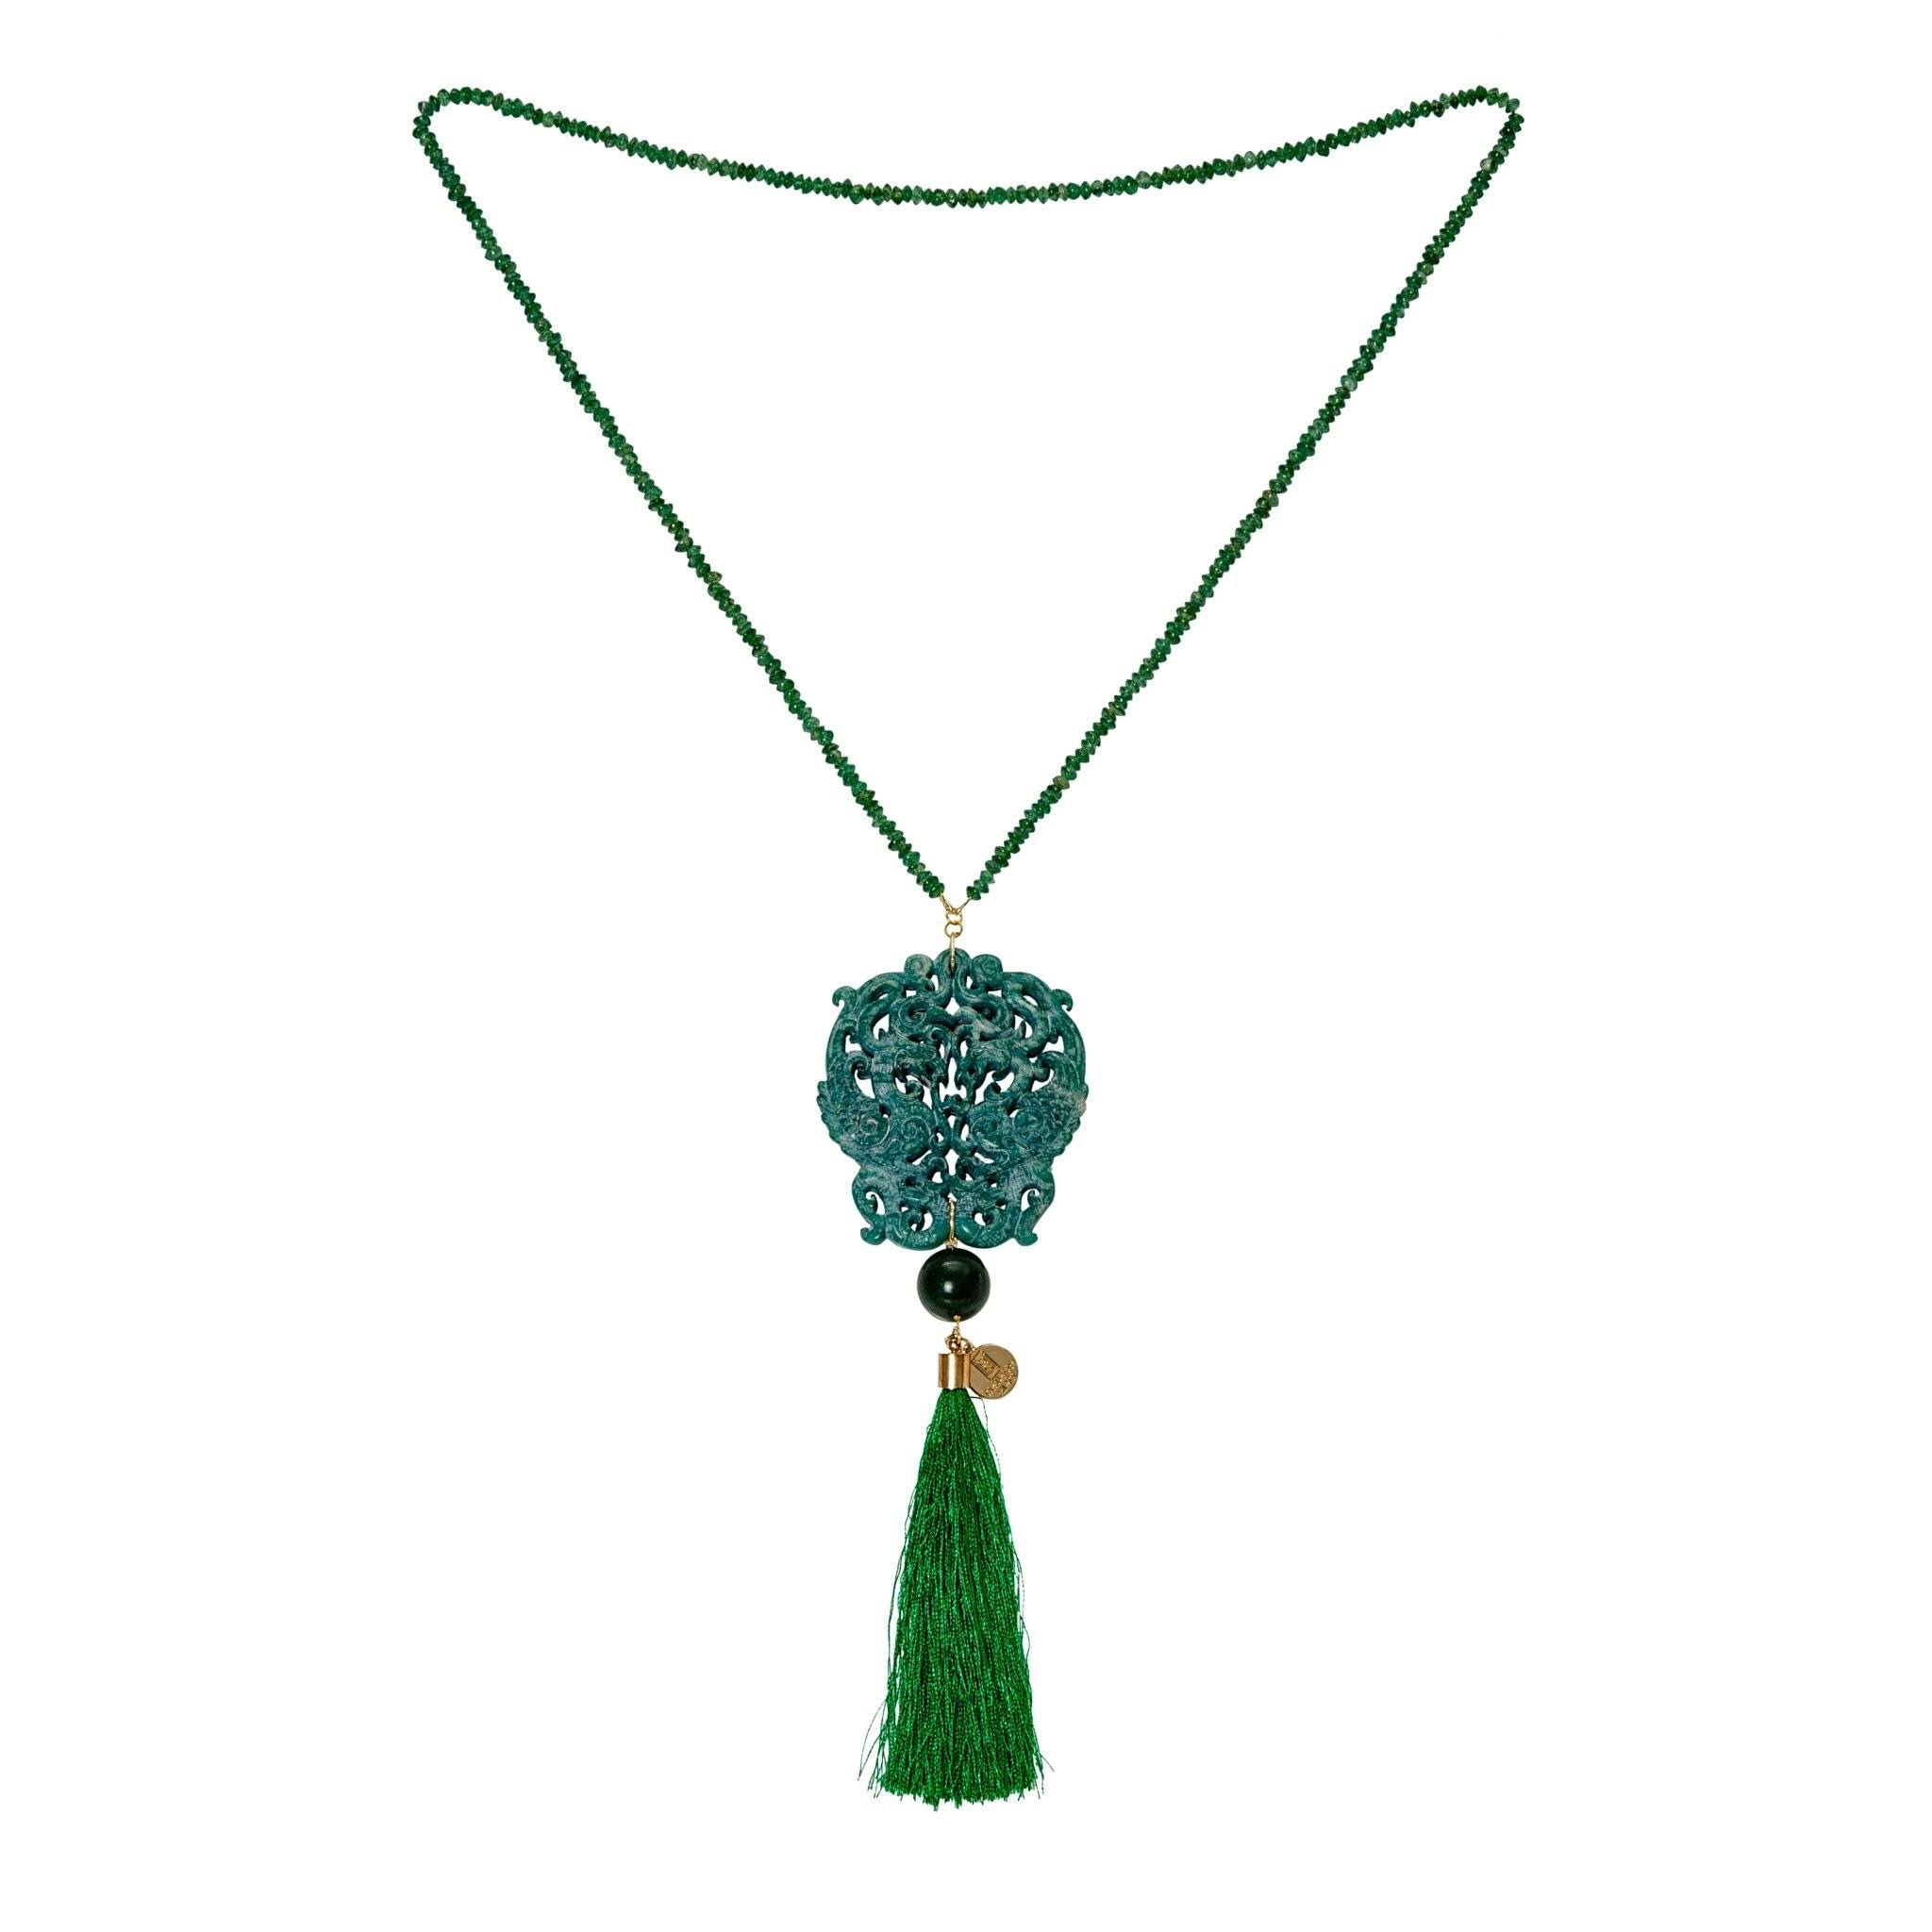 HONG KONG green onyx necklace - MadamSiam